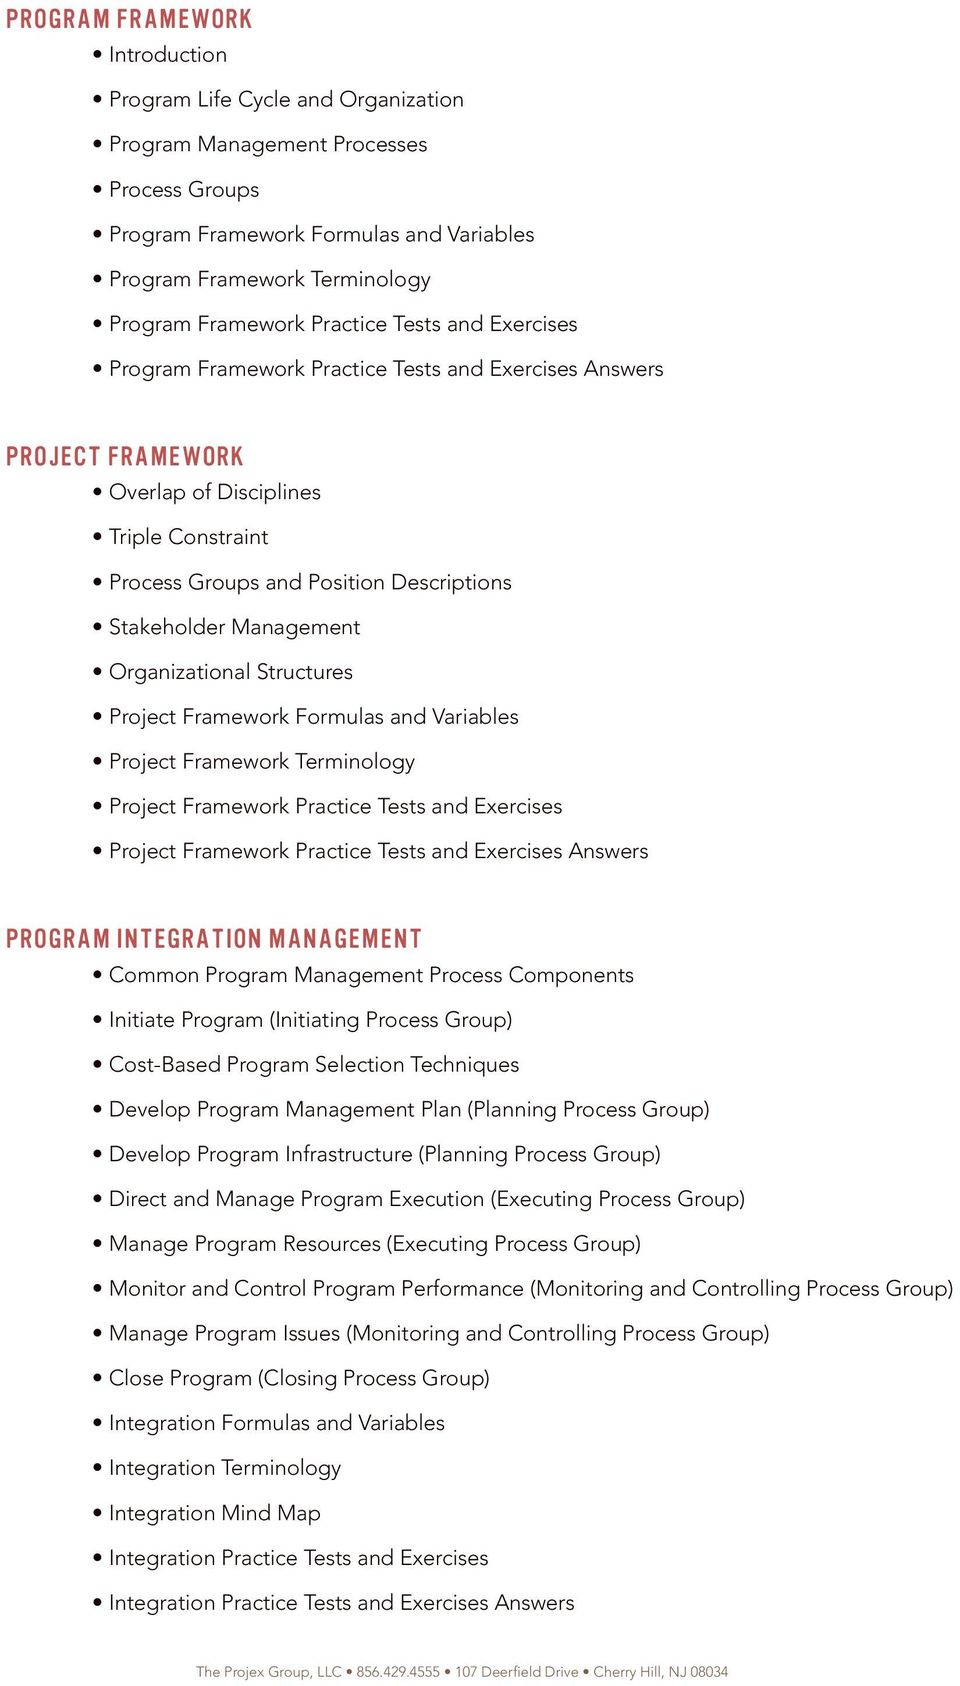 Management Organizational Structures Project Framework Formulas and Variables Project Framework Terminology Project Framework Practice Tests and Exercises Project Framework Practice Tests and